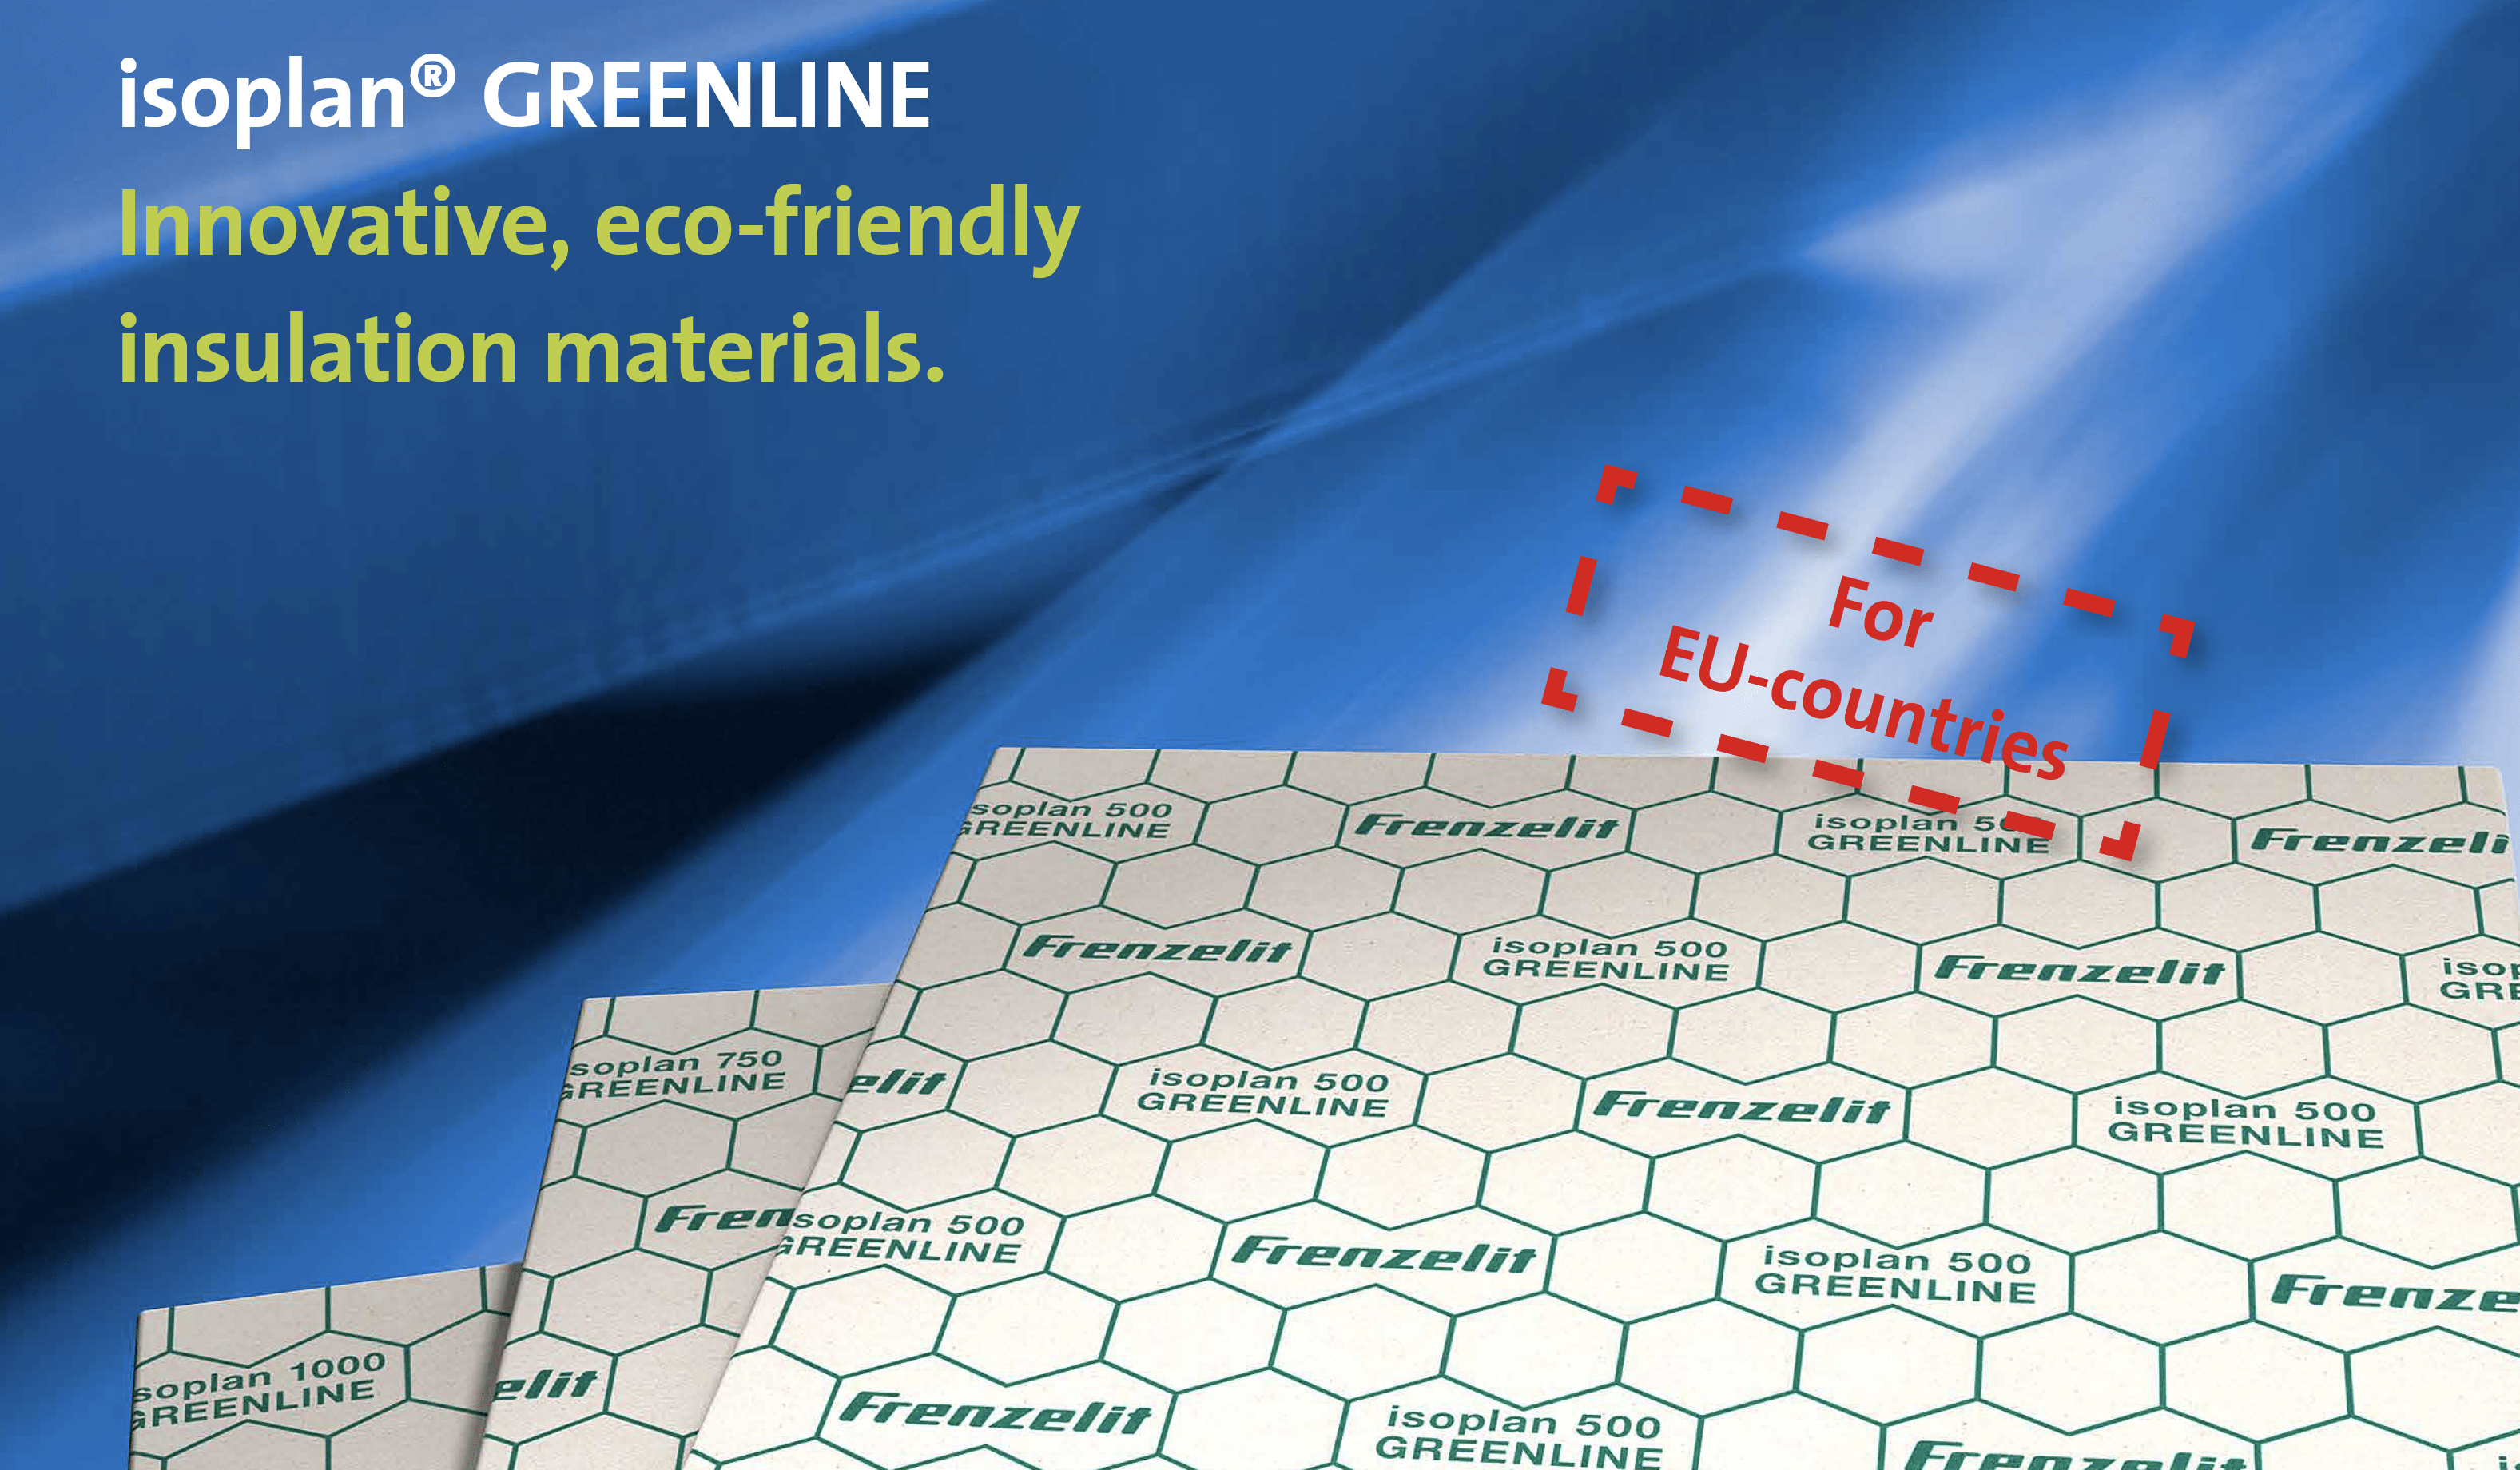 isoplan® GREENLINE  – Innovative, eco-friendly insulation materials.